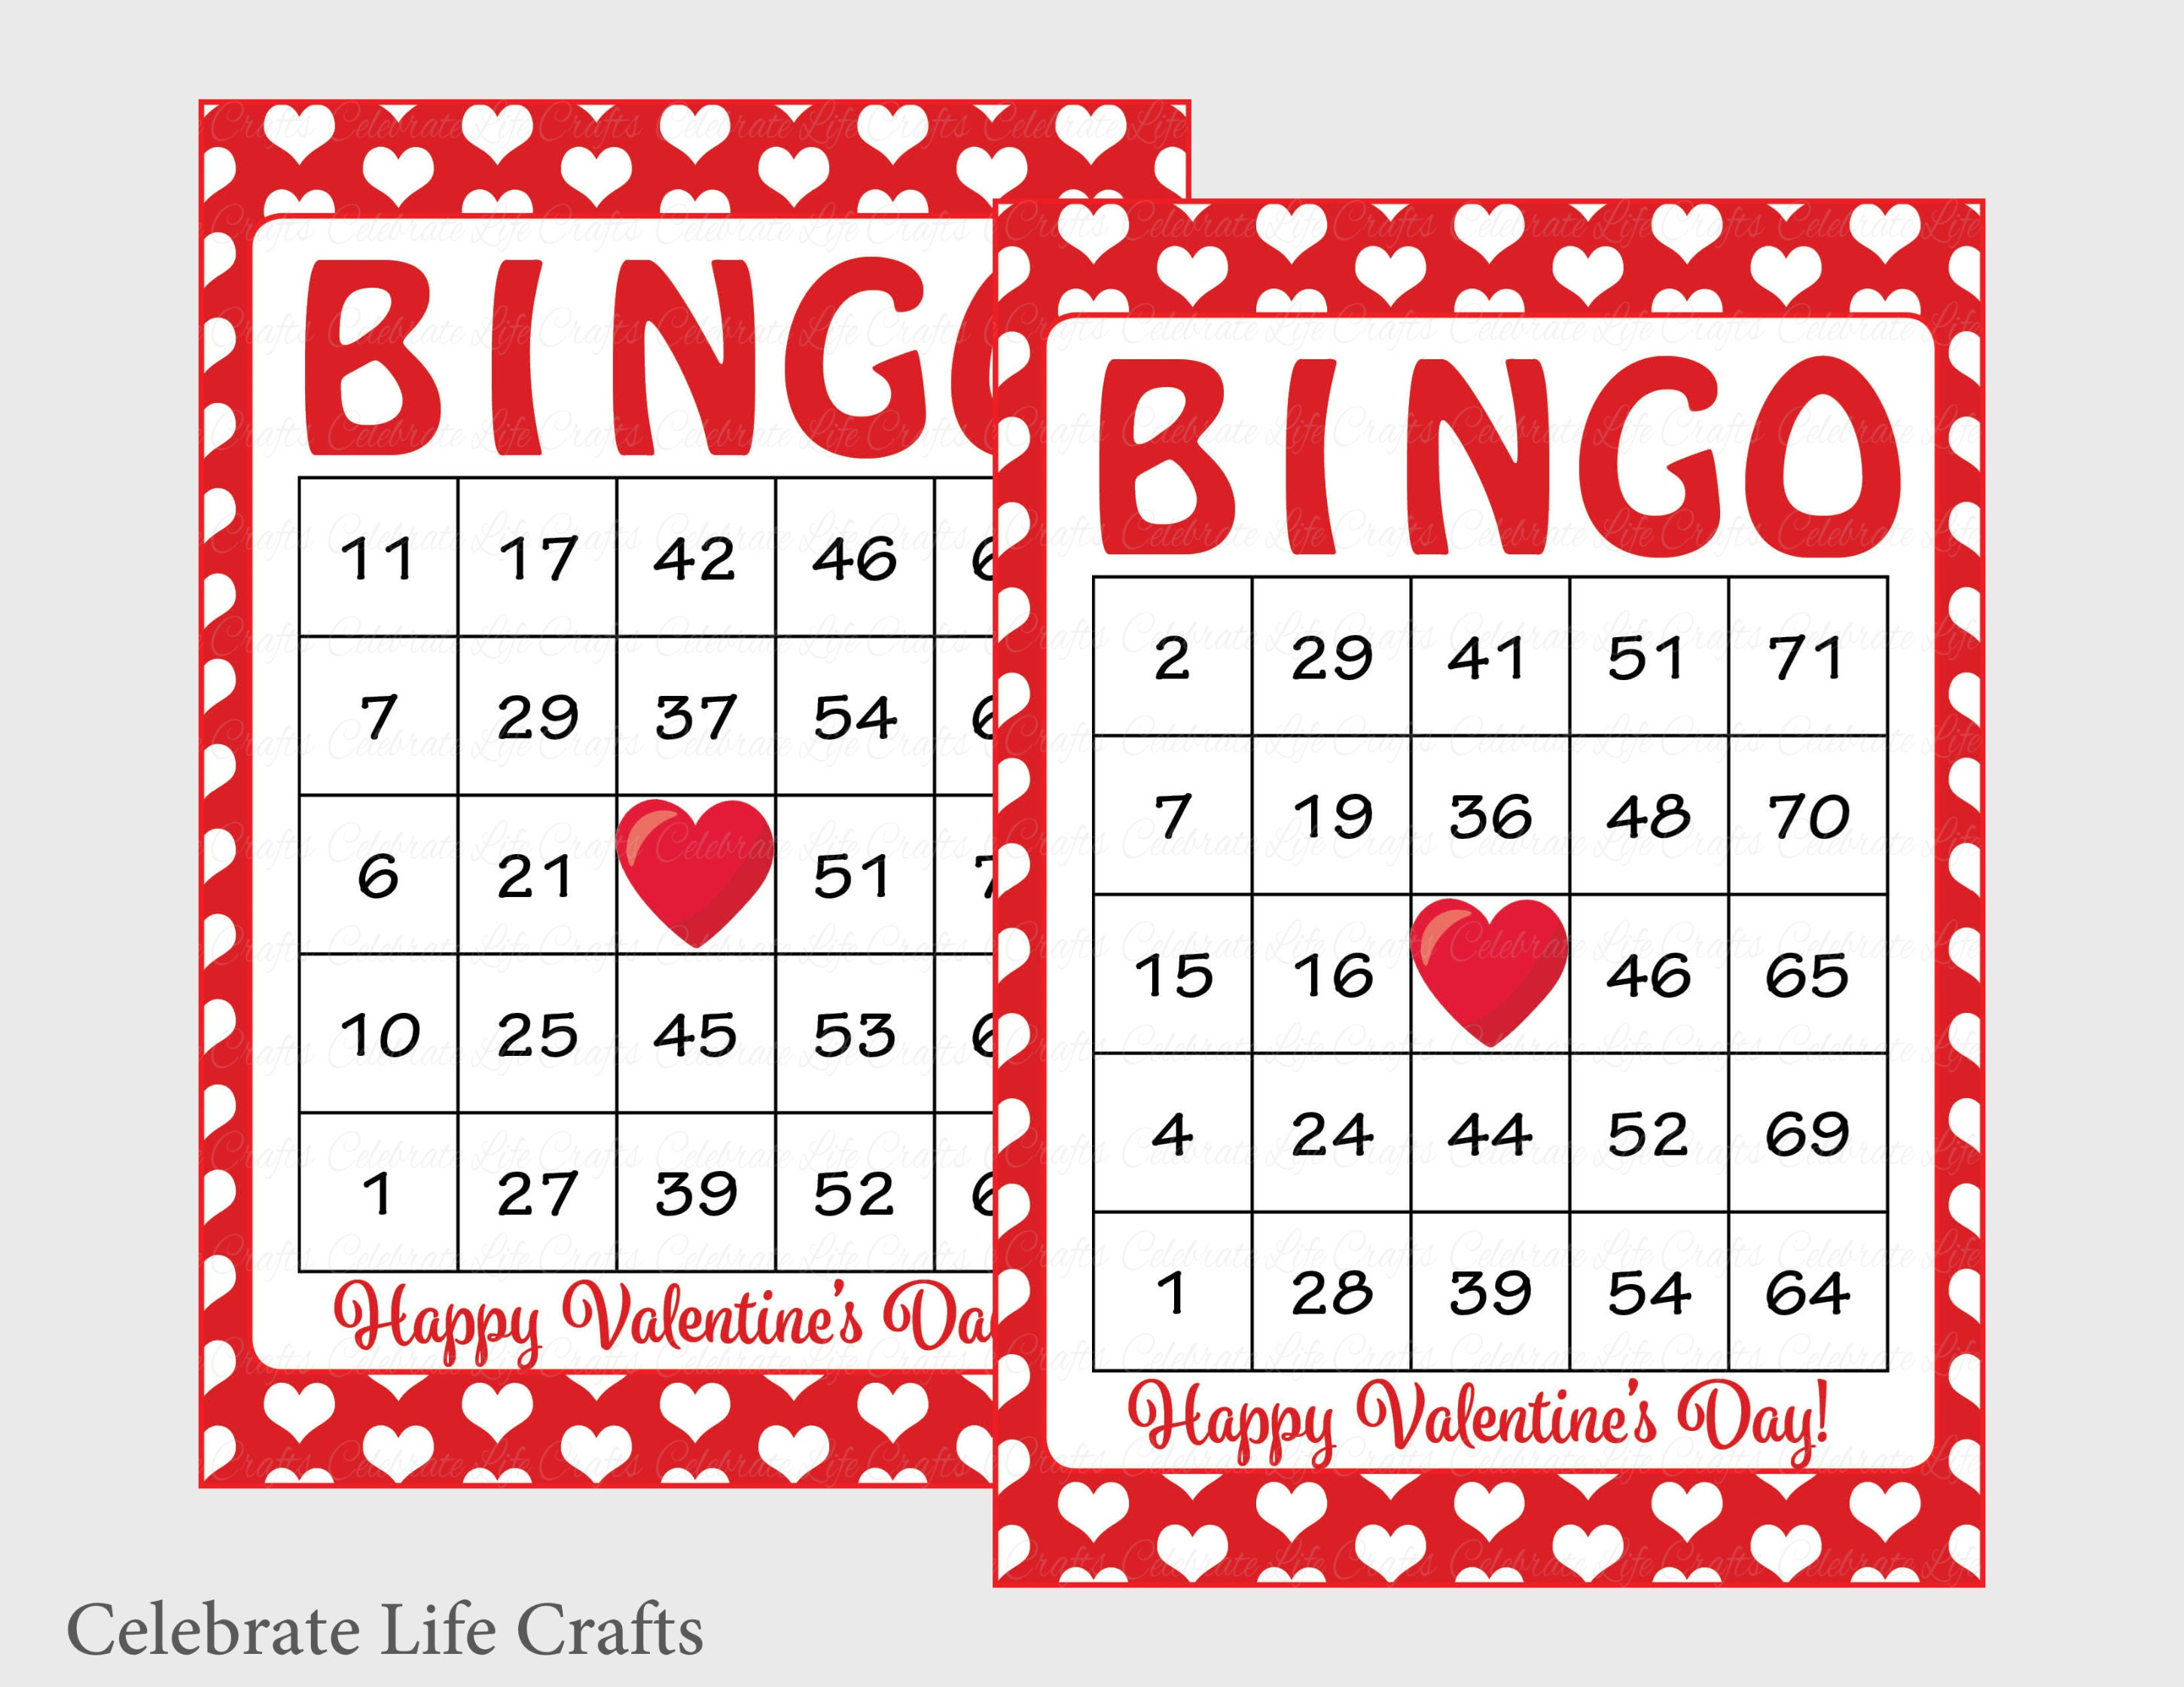 photo about Printable Valentine Bingo Cards named 100 Valentines Bingo Playing cards - Printable Valentine Bingo Playing cards - Instantaneous Obtain - Valentines Working day Activity for children - Pink White Hearts - V1005